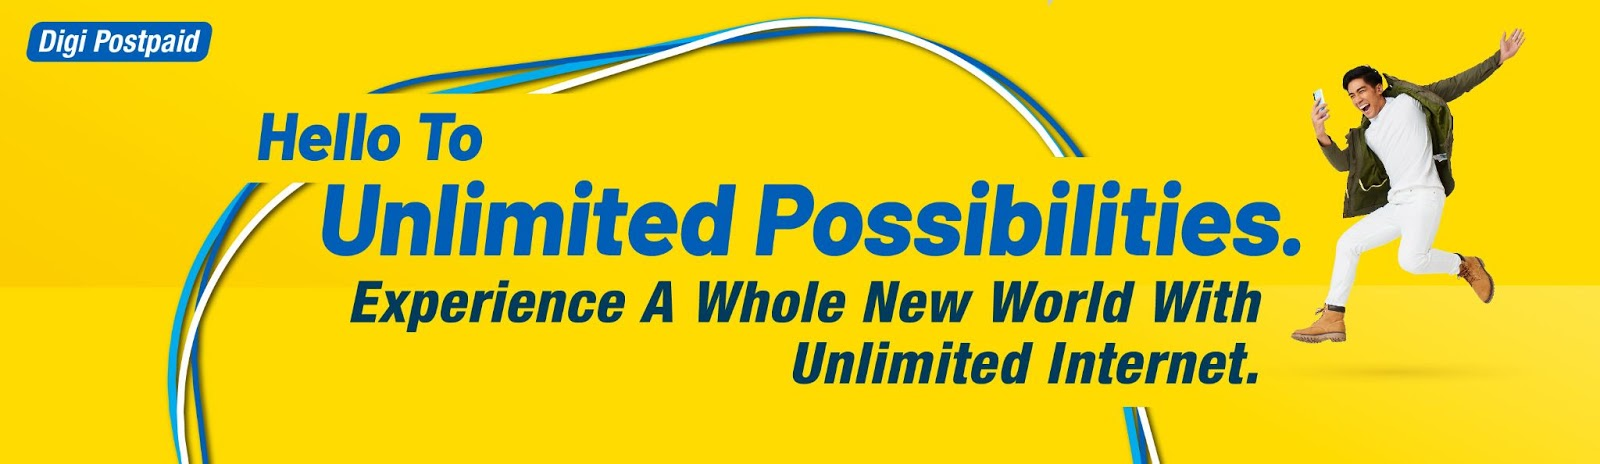 Unlimited Postpaid